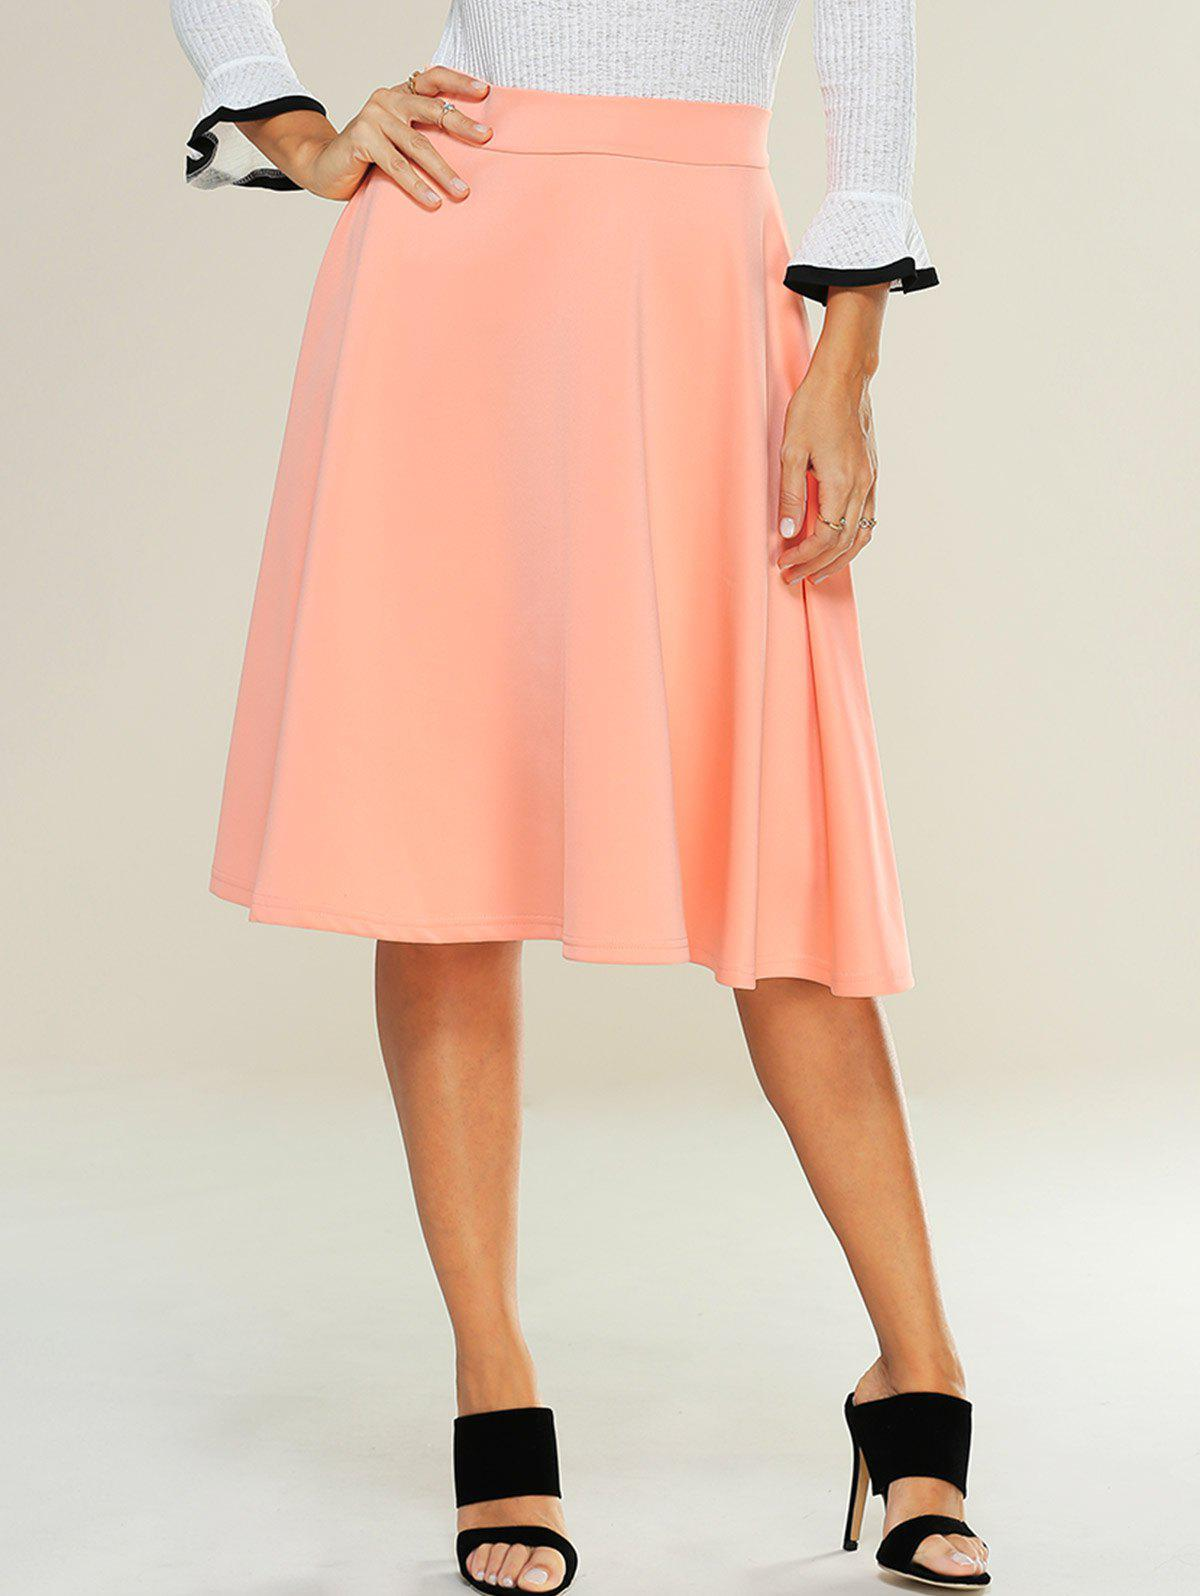 High Waist Zipped A Line Skirt - ORANGEPINK M